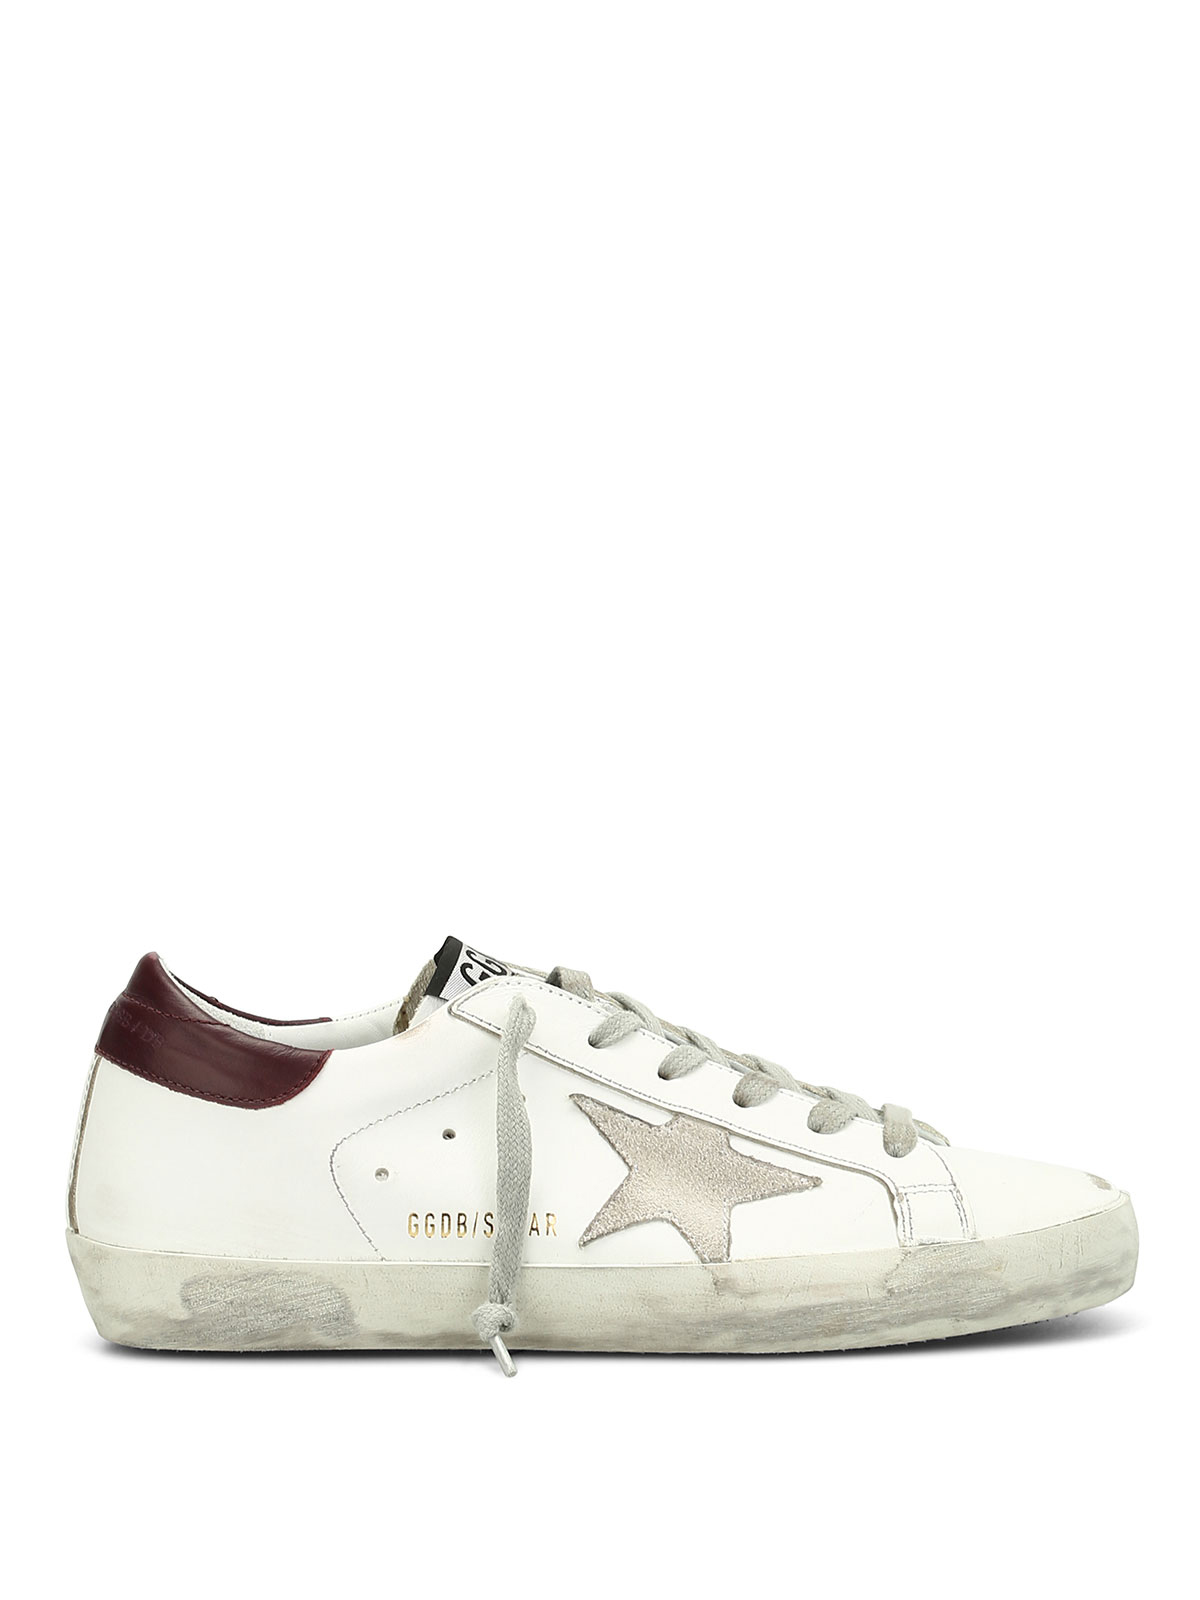 Superstar used effect sneakers by Golden Goose